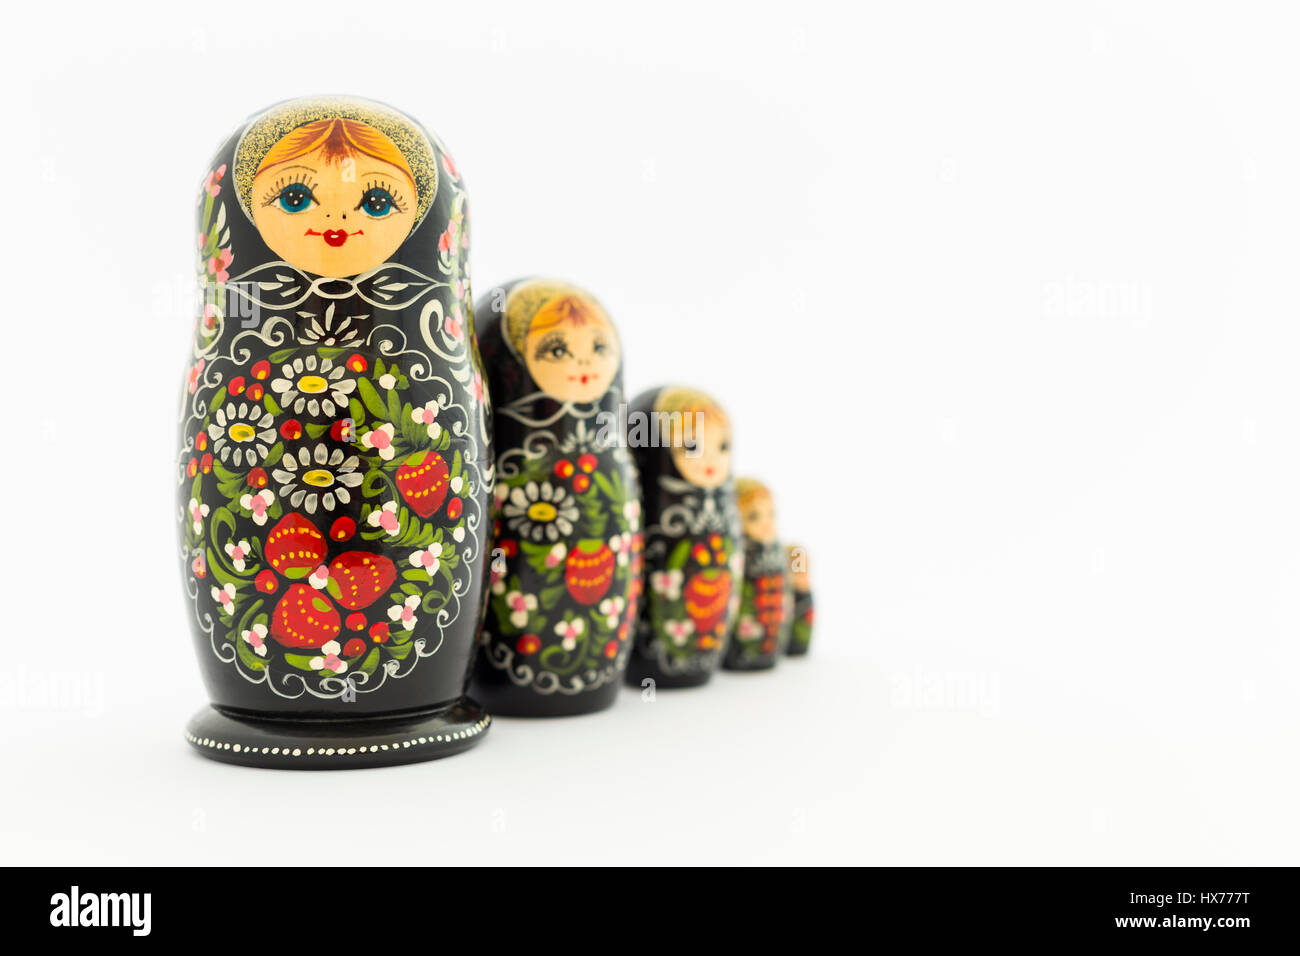 Beautiful black russian nesting dolls (matryoshka dolls) with white, green and red painting in front of white background - Stock Image